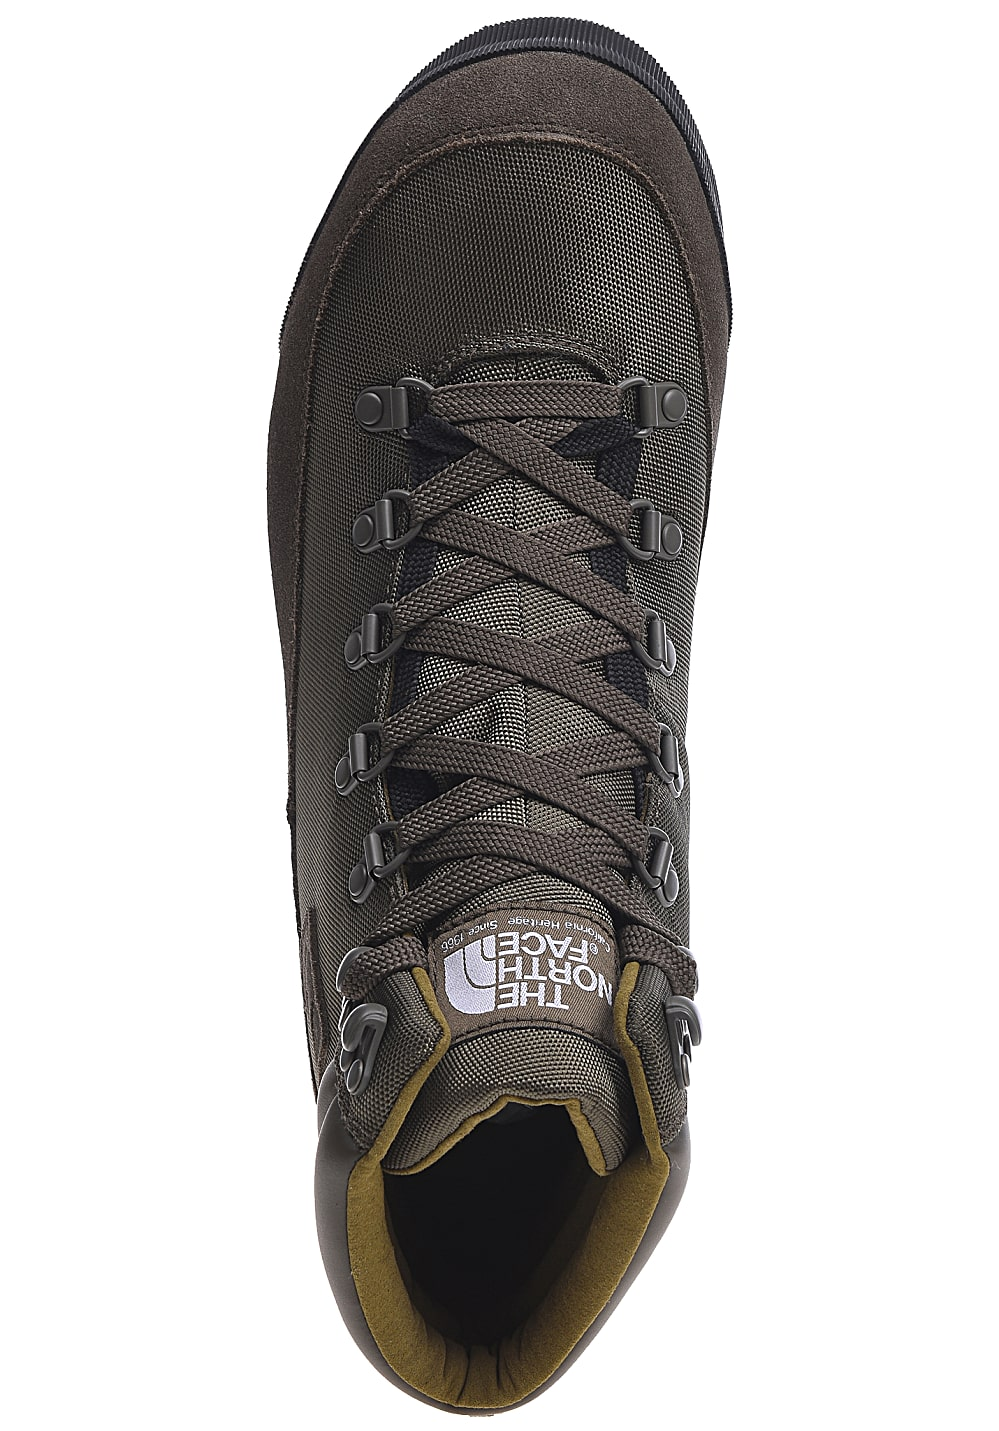 03a4ce16eb ... THE NORTH FACE Back-2-Berkeley Nl - Hiking Shoes for Men - Green. Back  to Overview. 1; 2; 3; 4; 5; 6. Previous. Next